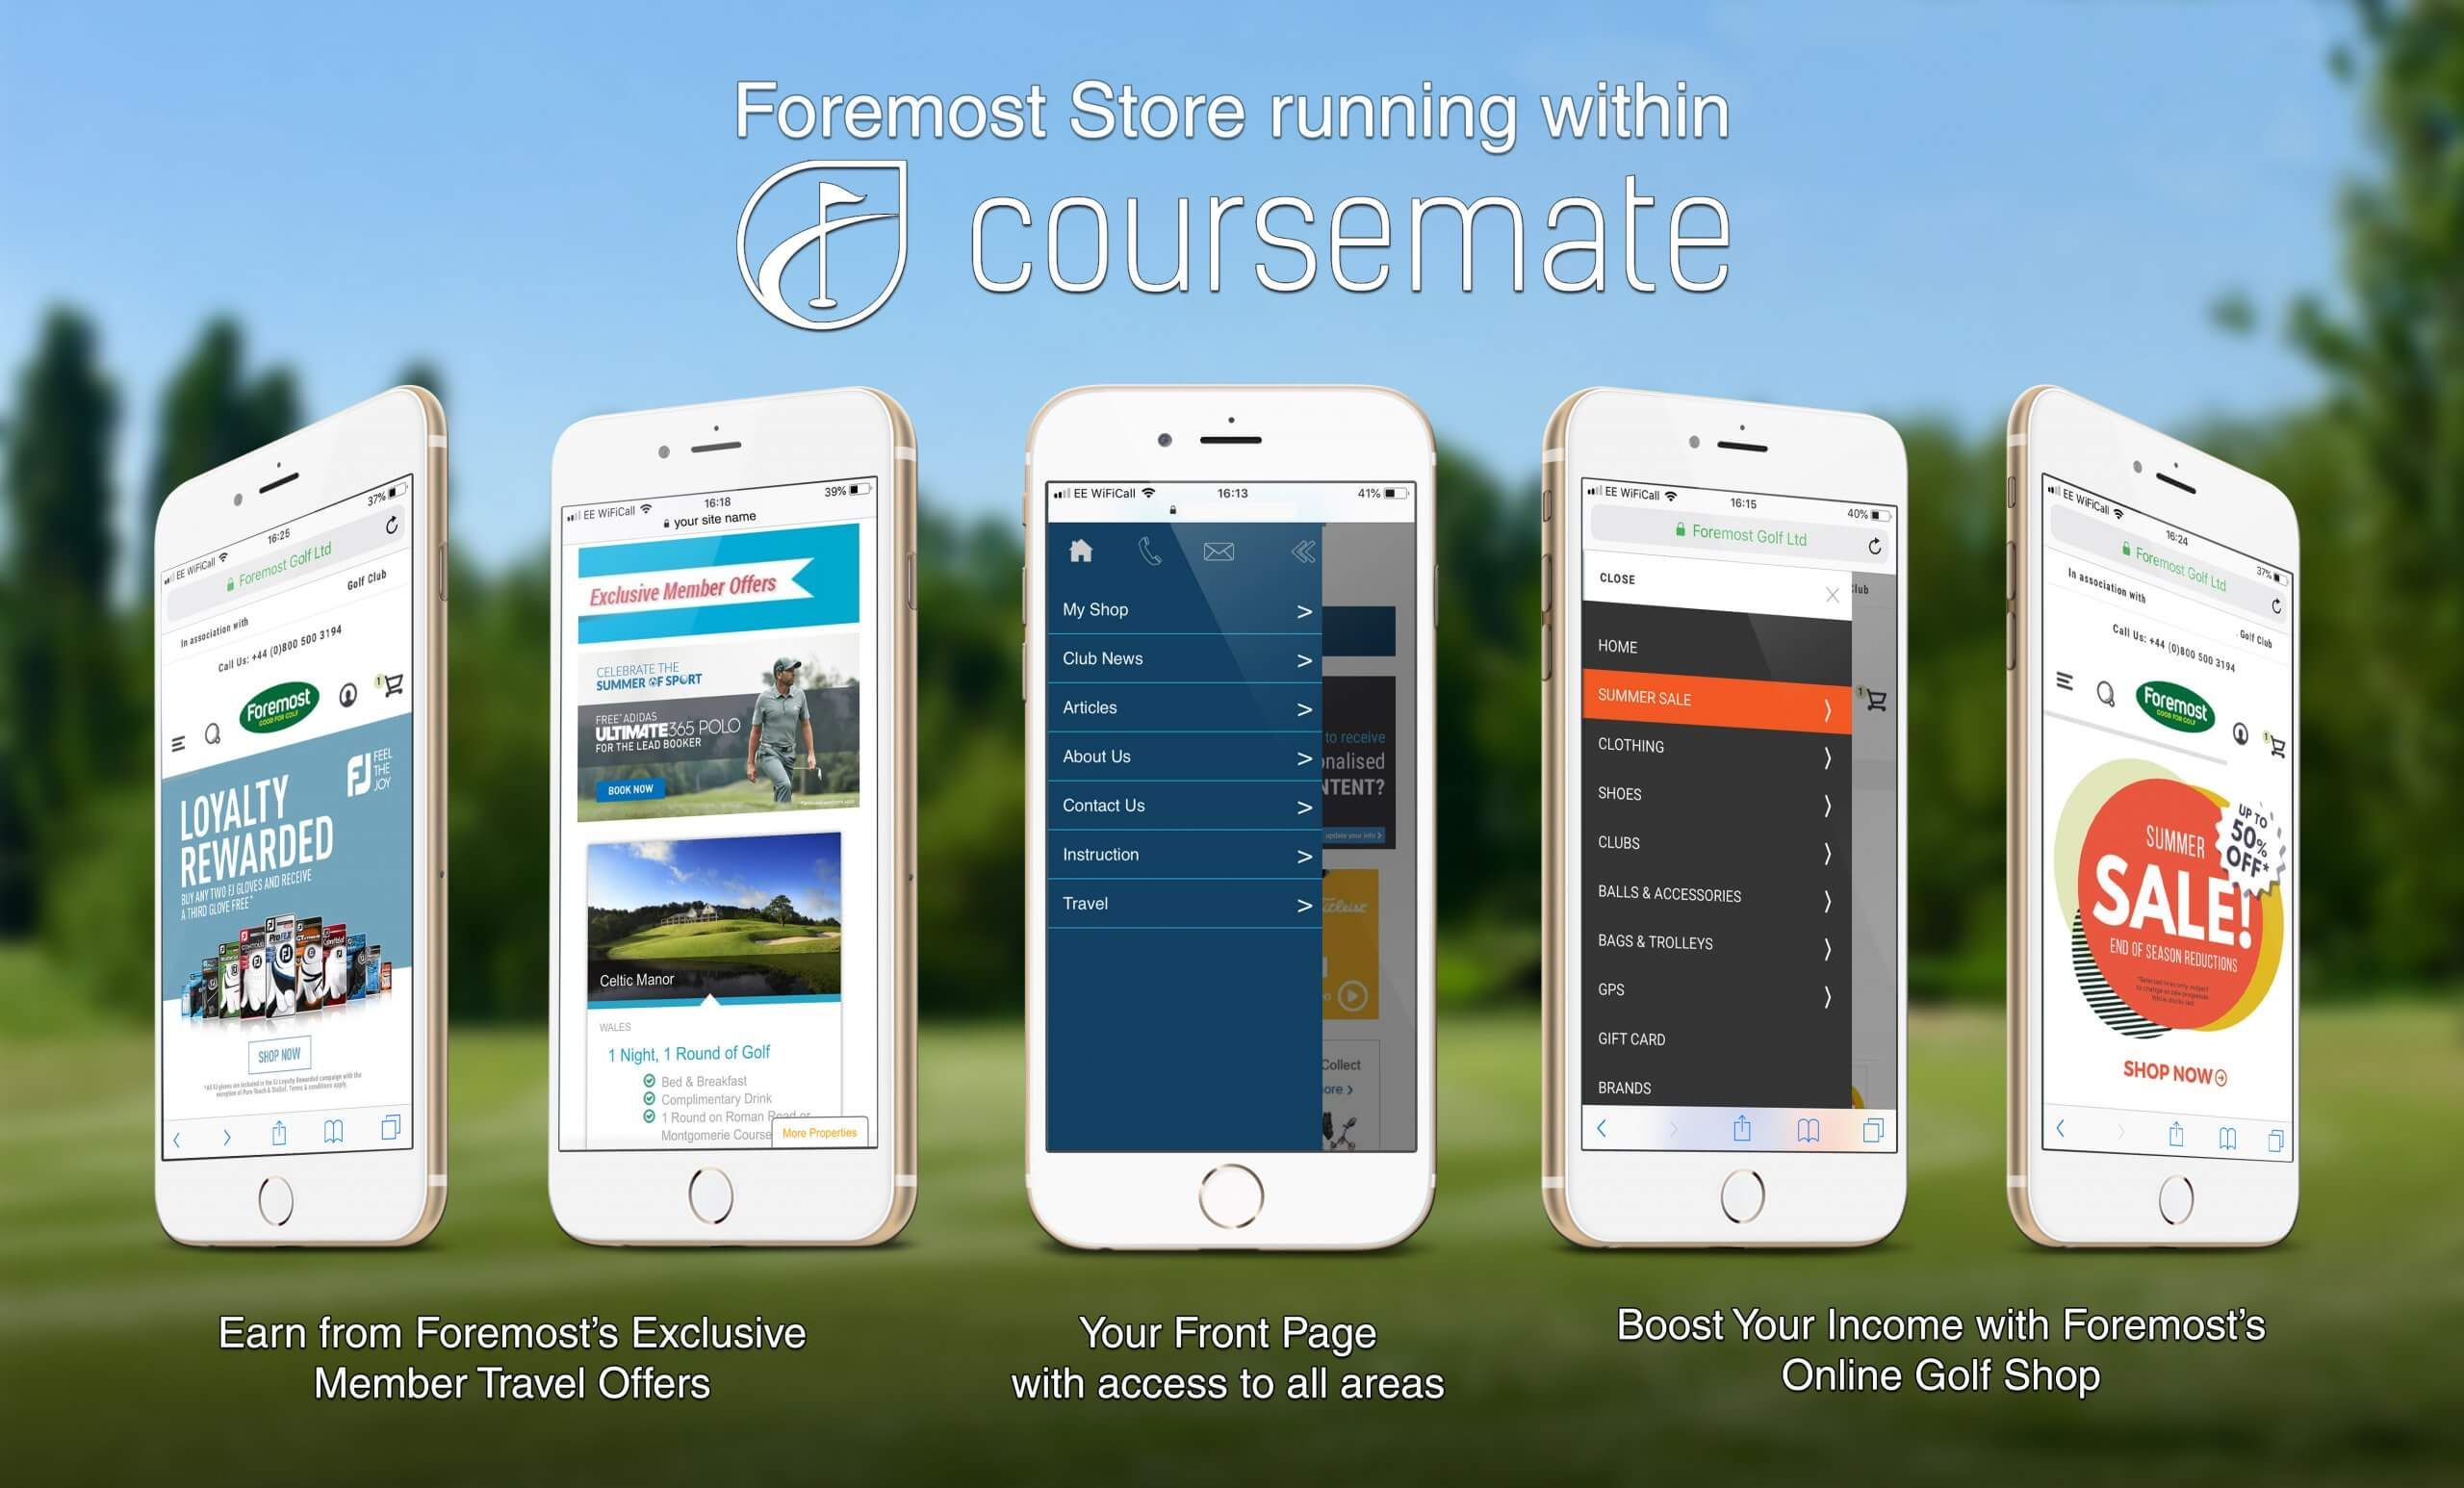 How CourseMate App is Helping the Club Pro to Increase Their Revenue